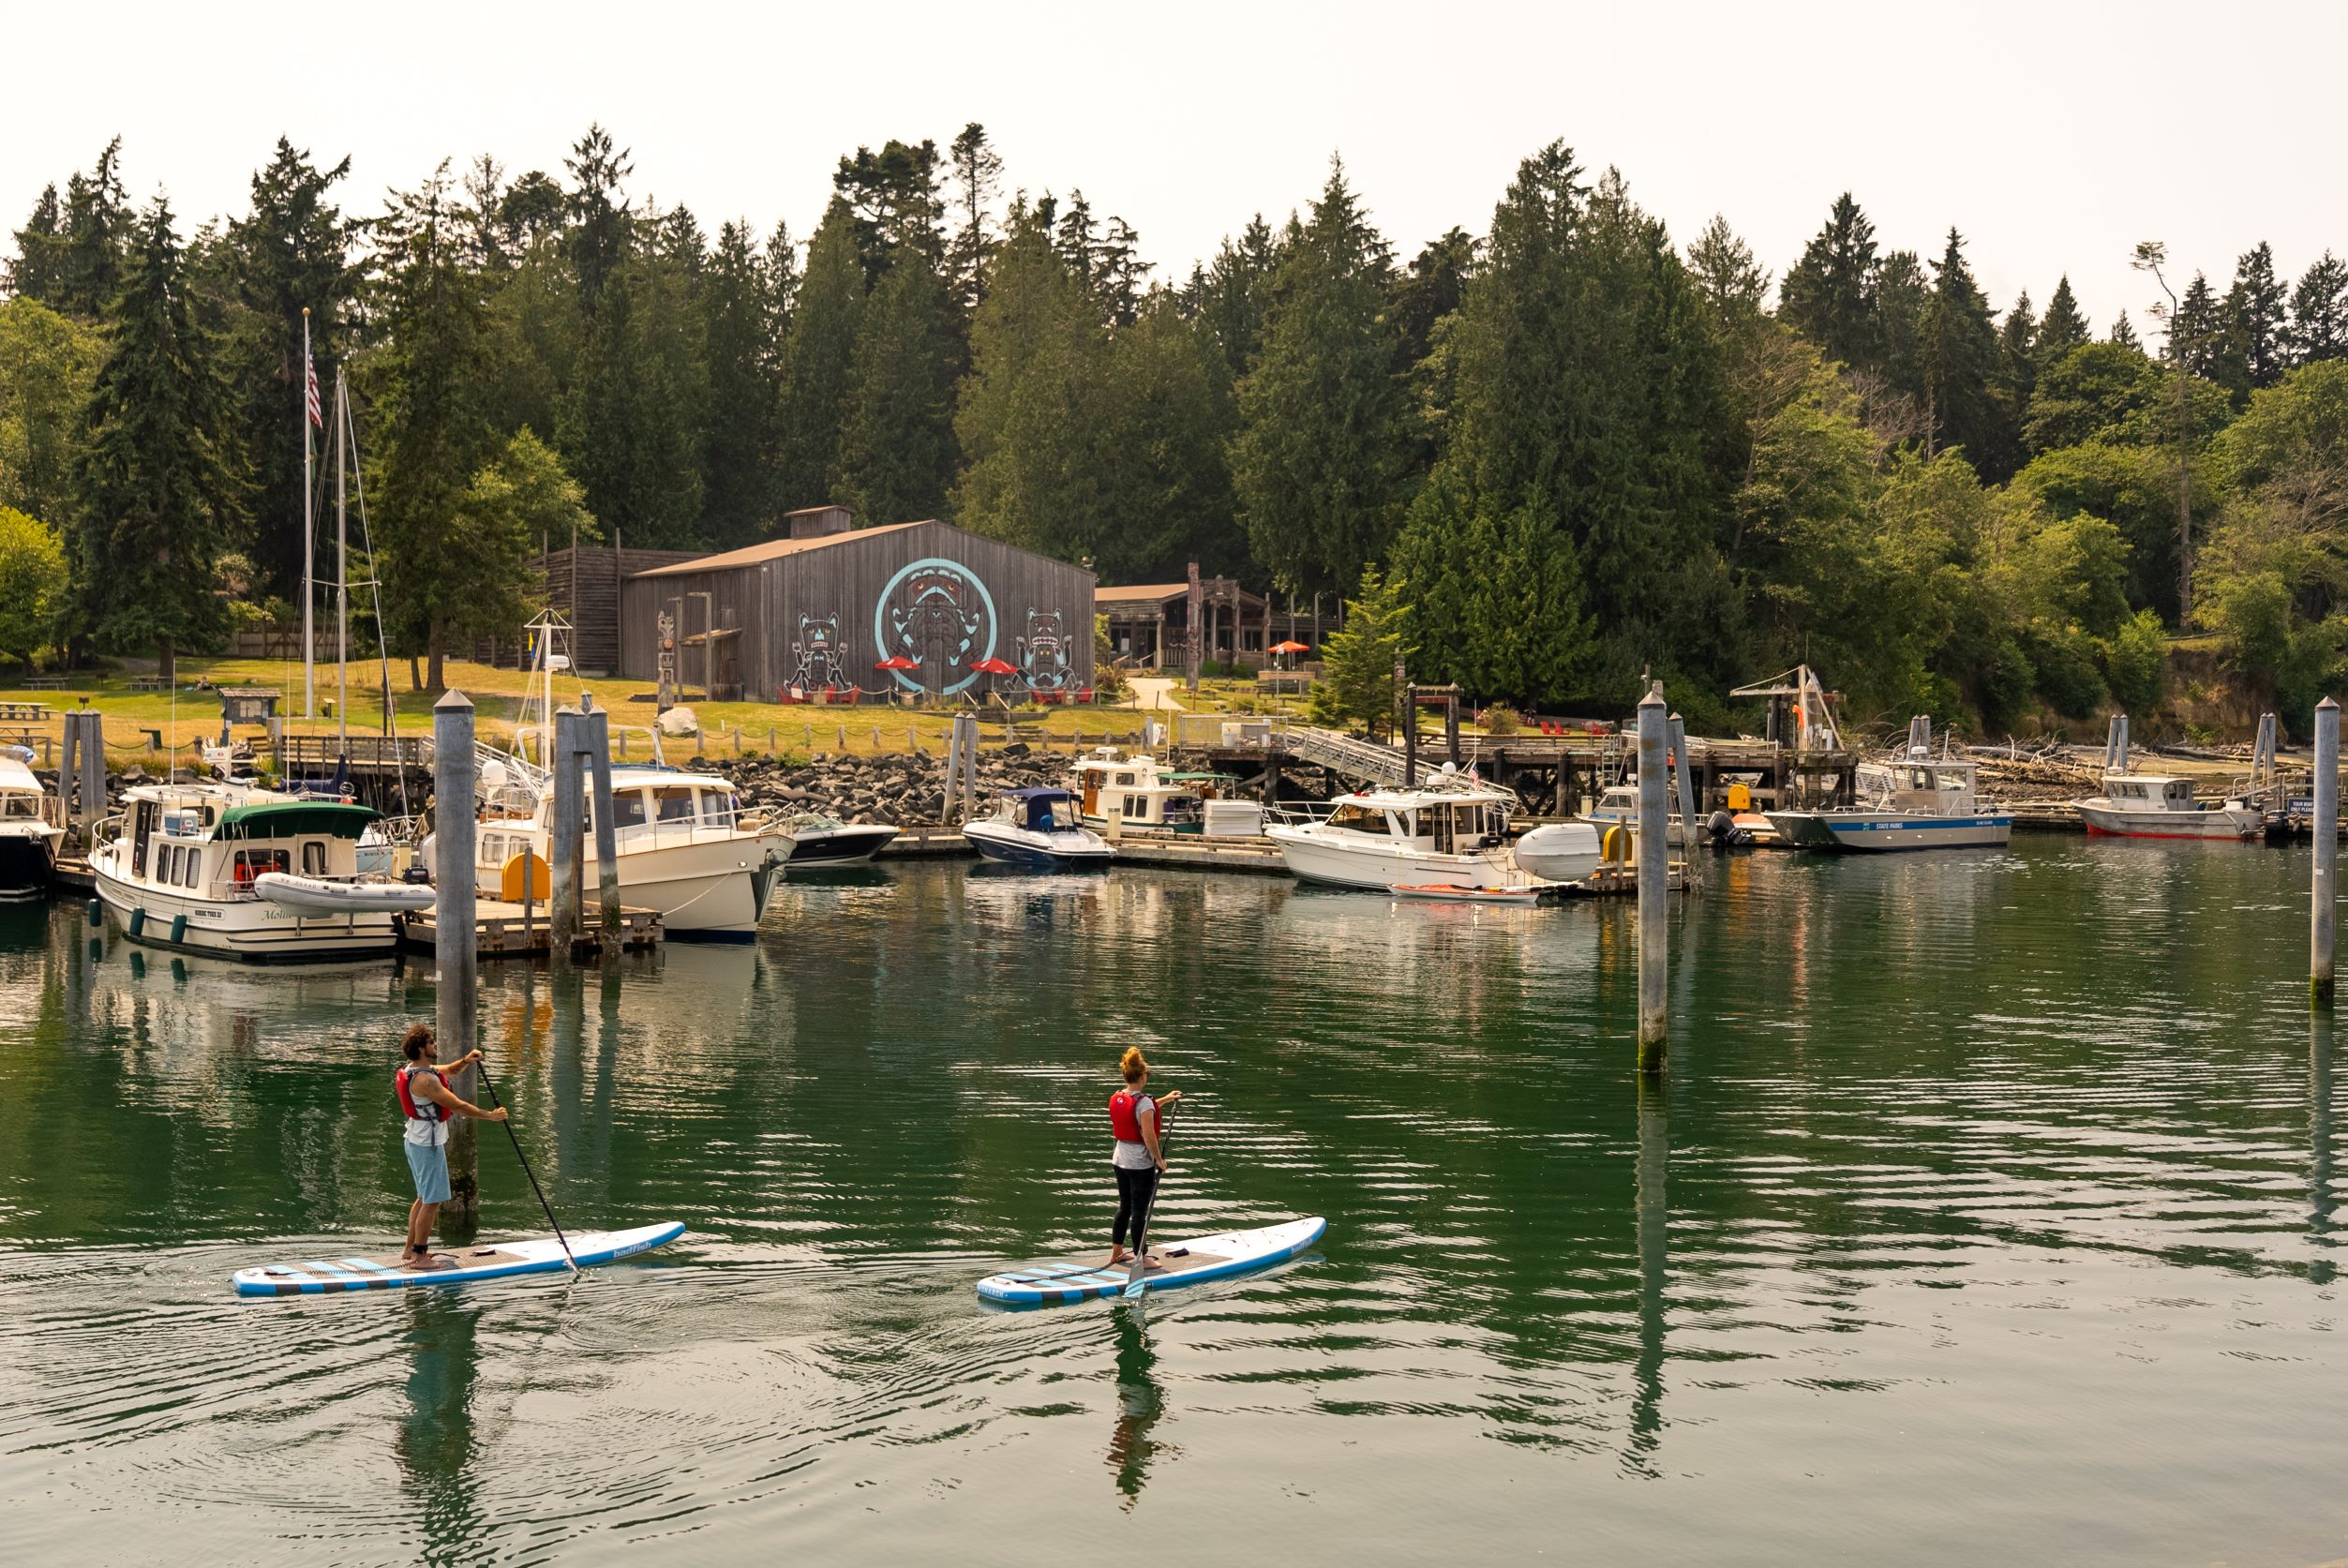 Man and woman paddle boarding in marina with boats in midground and longhouse in background with green trees surrounding it